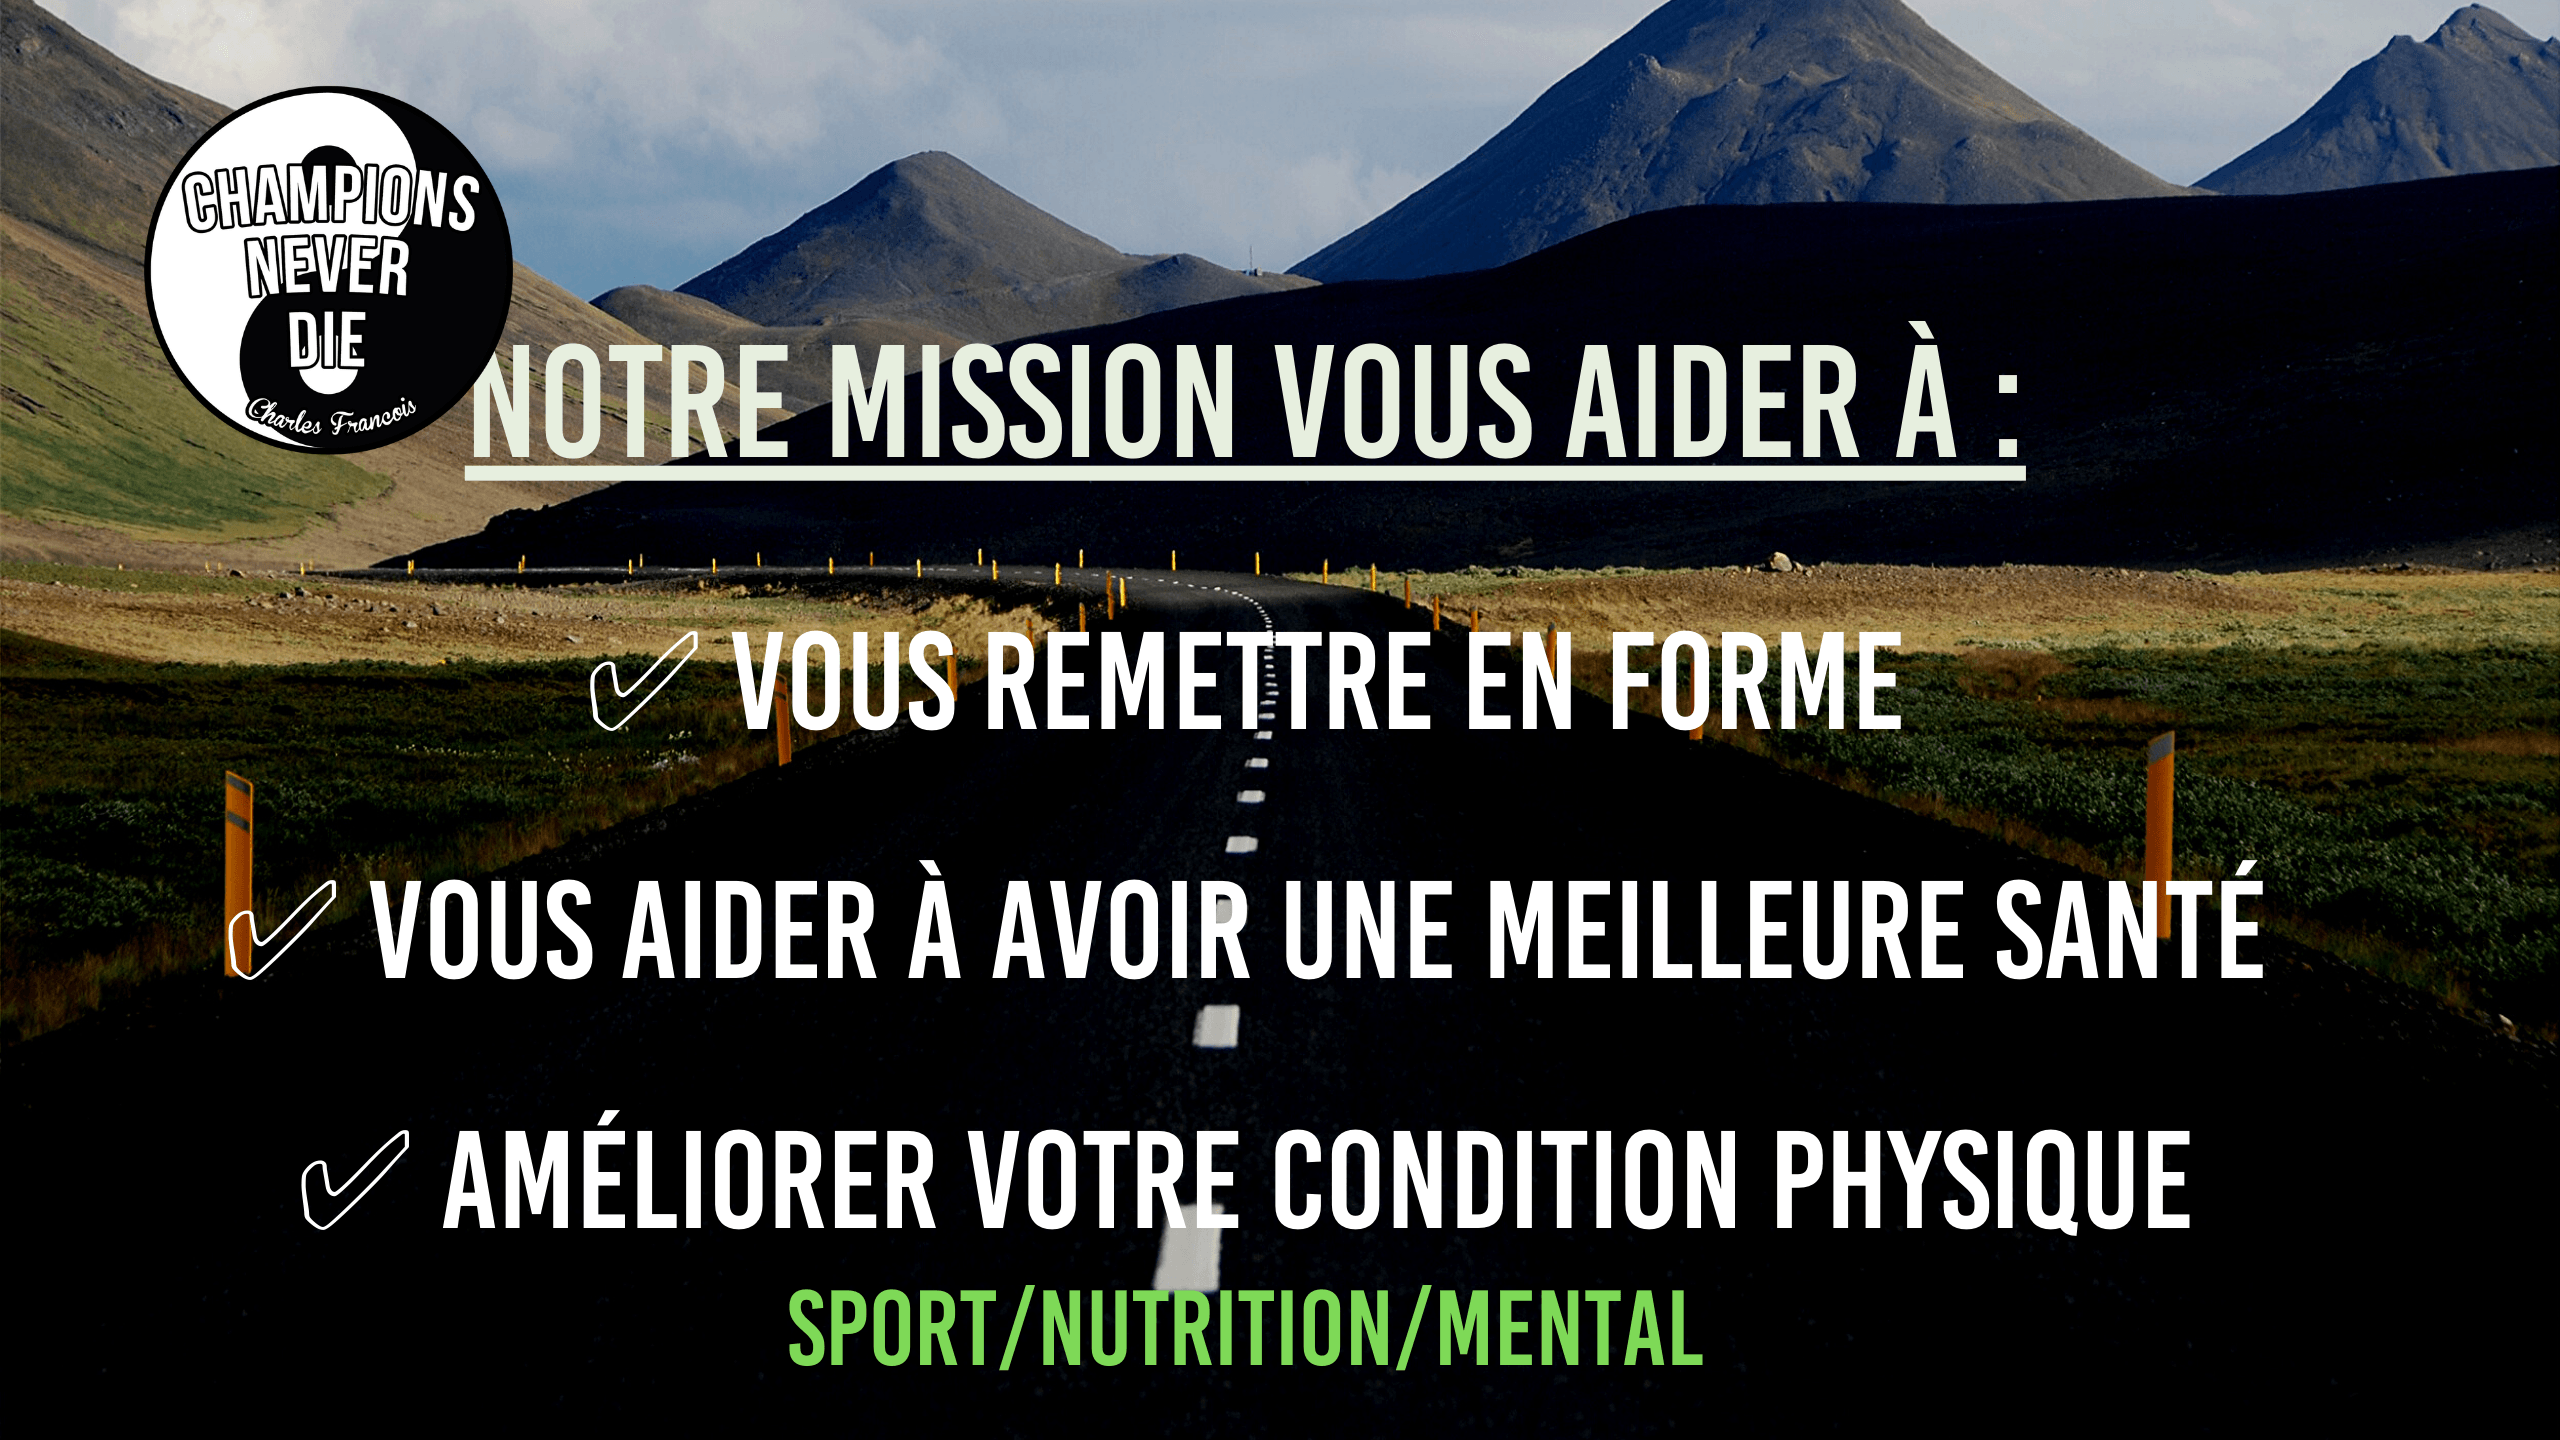 Champions never die-Coaching sport nutrition mental